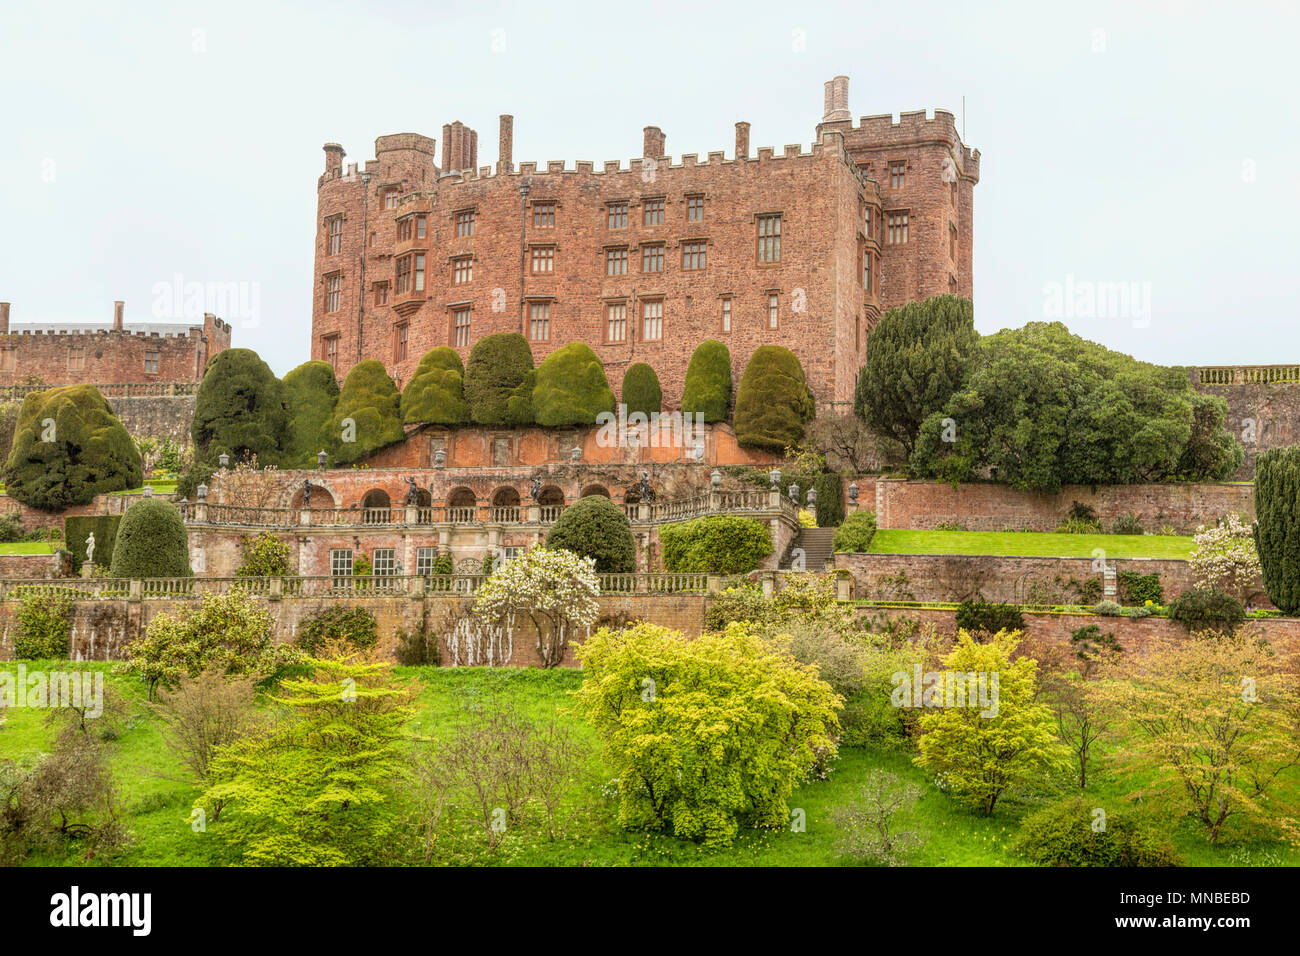 Powis Castle viewed from the south showing the distinctive terraced gardens, Welshpool, Powys, Gwynedd, Wales, United Kingdom. - Stock Image